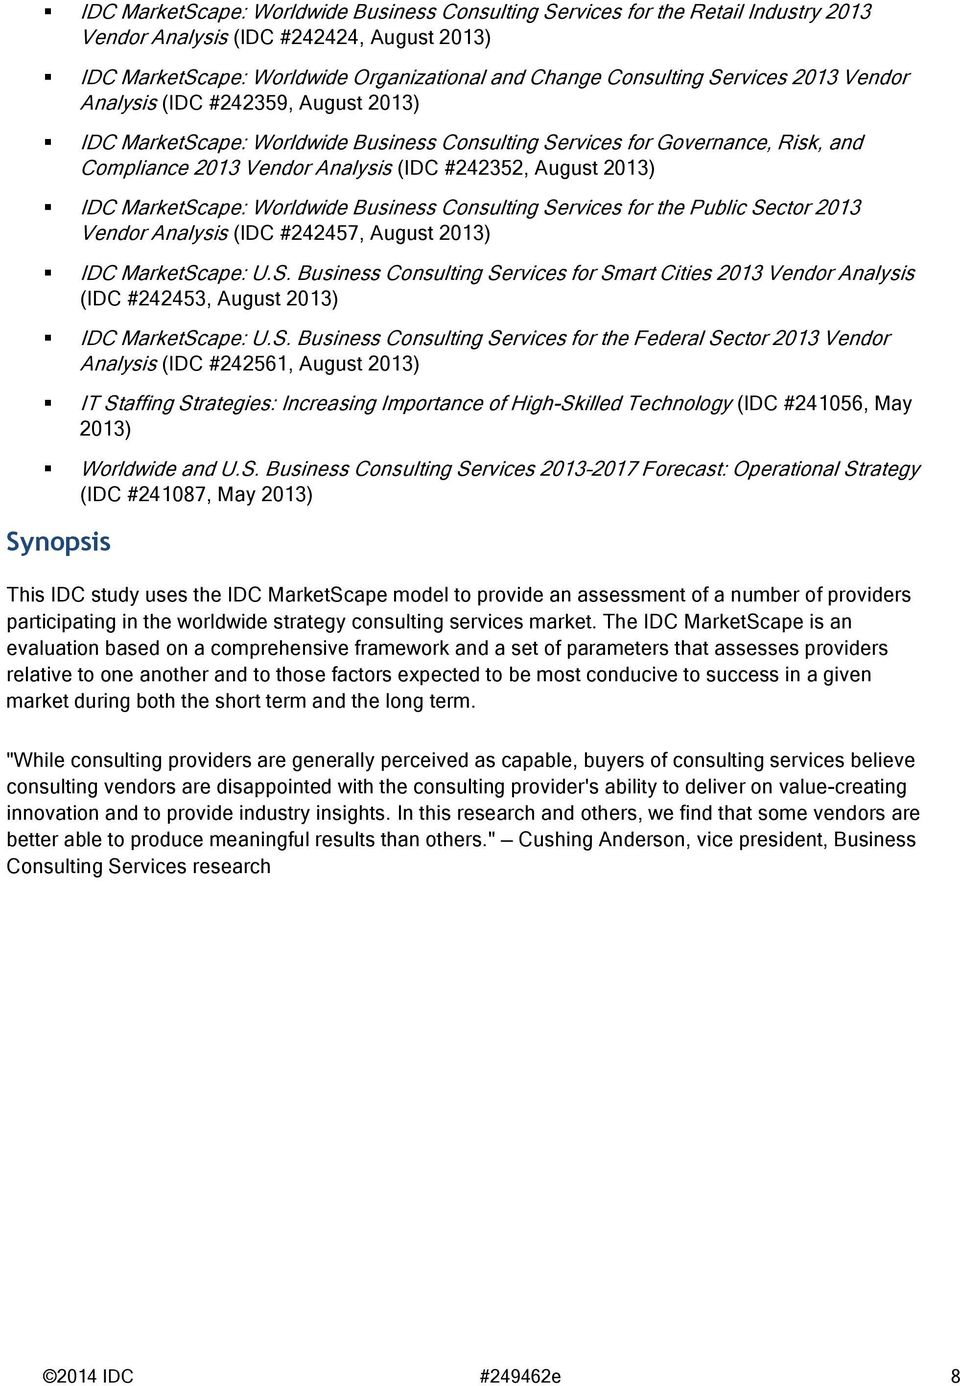 IDC MarketScape: Worldwide Business Consulting Services for the Public Sector 2013 Vendor Analysis (IDC #242457, August 2013) IDC MarketScape: U.S. Business Consulting Services for Smart Cities 2013 Vendor Analysis (IDC #242453, August 2013) IDC MarketScape: U.